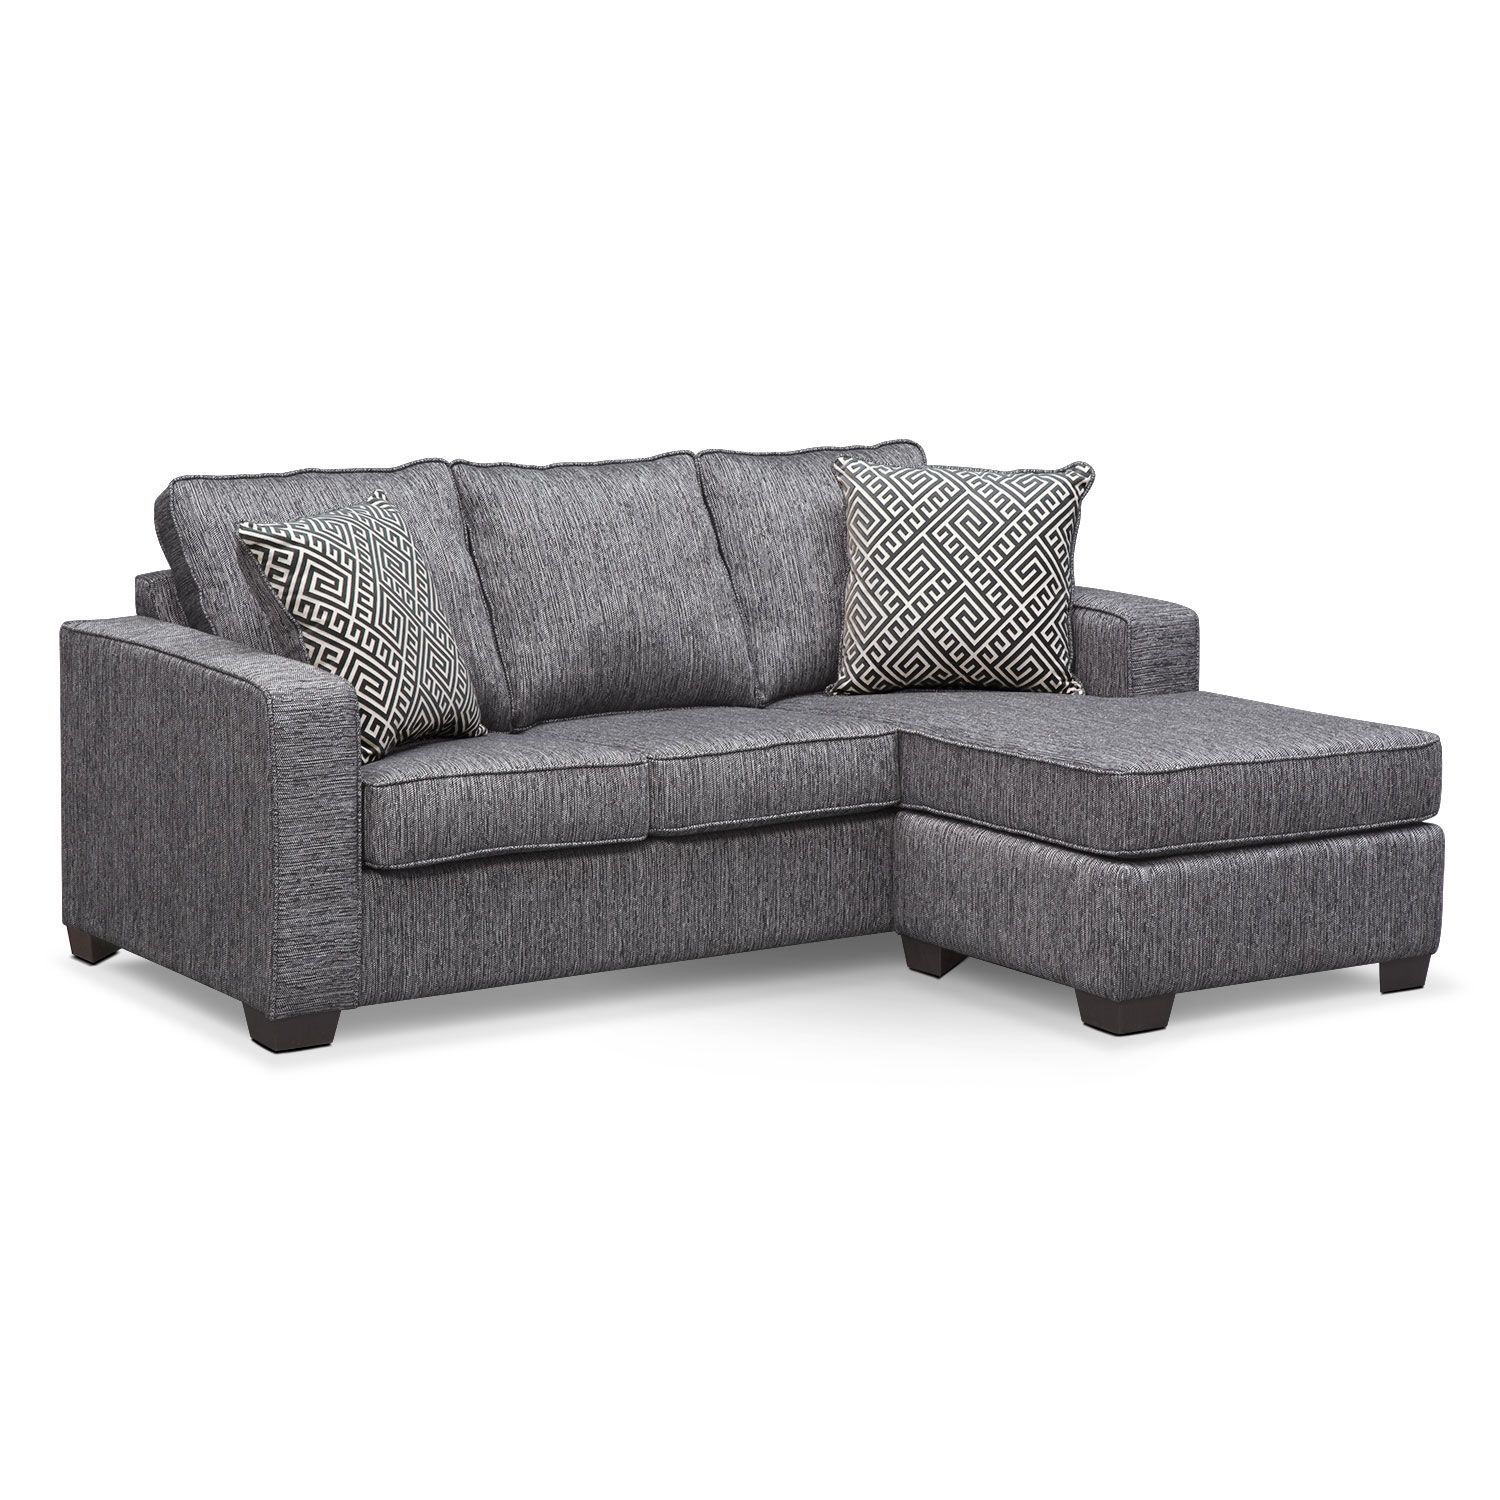 foam sleeper sofa for s clearance beds sale 799 99 living room furniture sterling charcoal queen